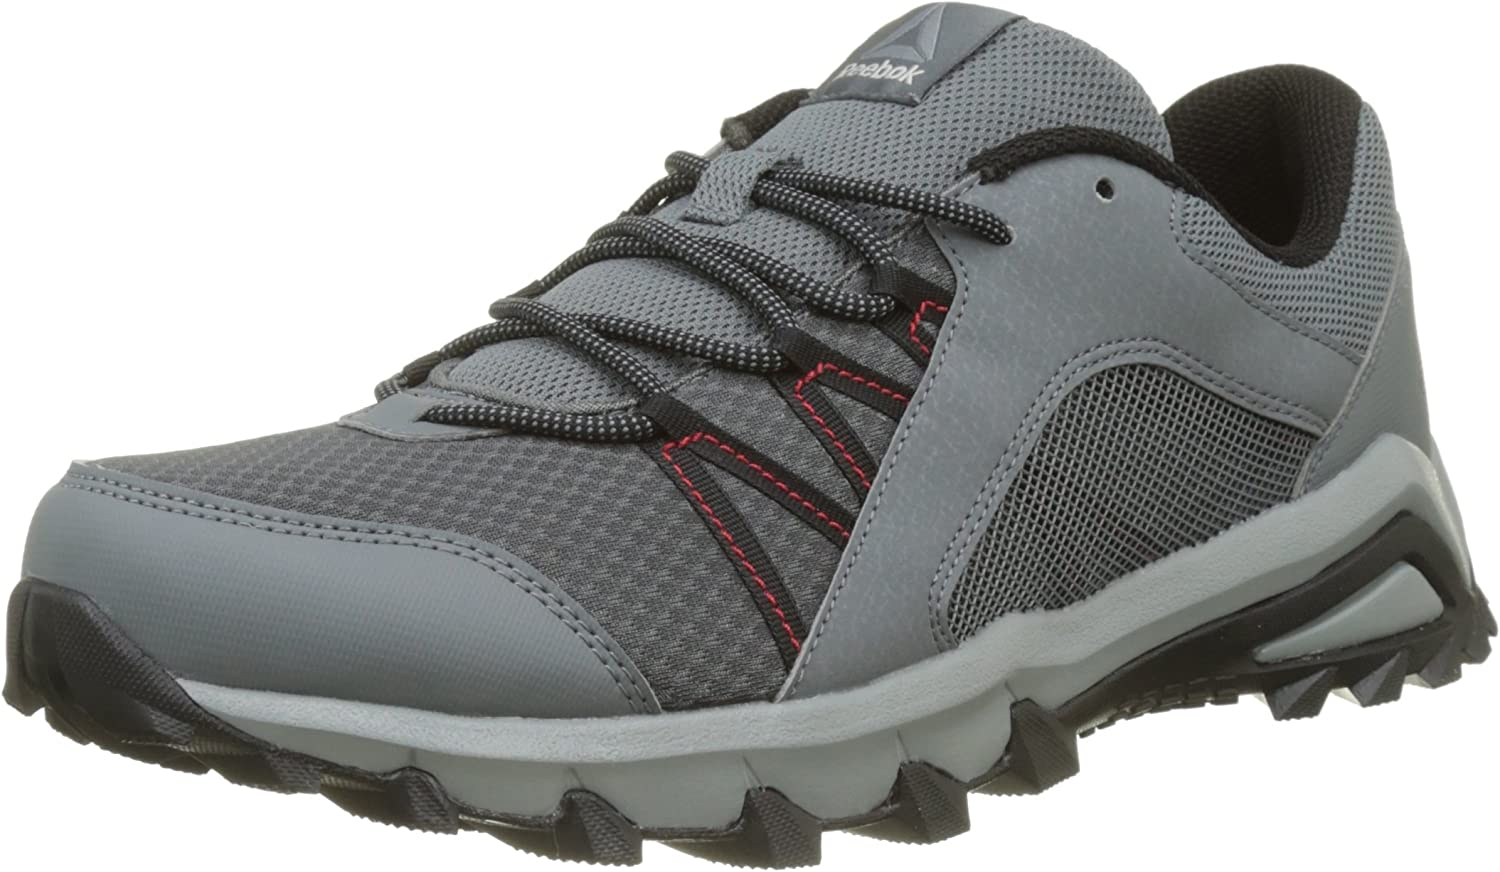 Reebok Trailgrip 6.0, Zapatillas de Trail Running para Hombre, Plateado (Alloy/Flint Grey/Black/Primal Red), 44 EU: Amazon.es: Zapatos y complementos